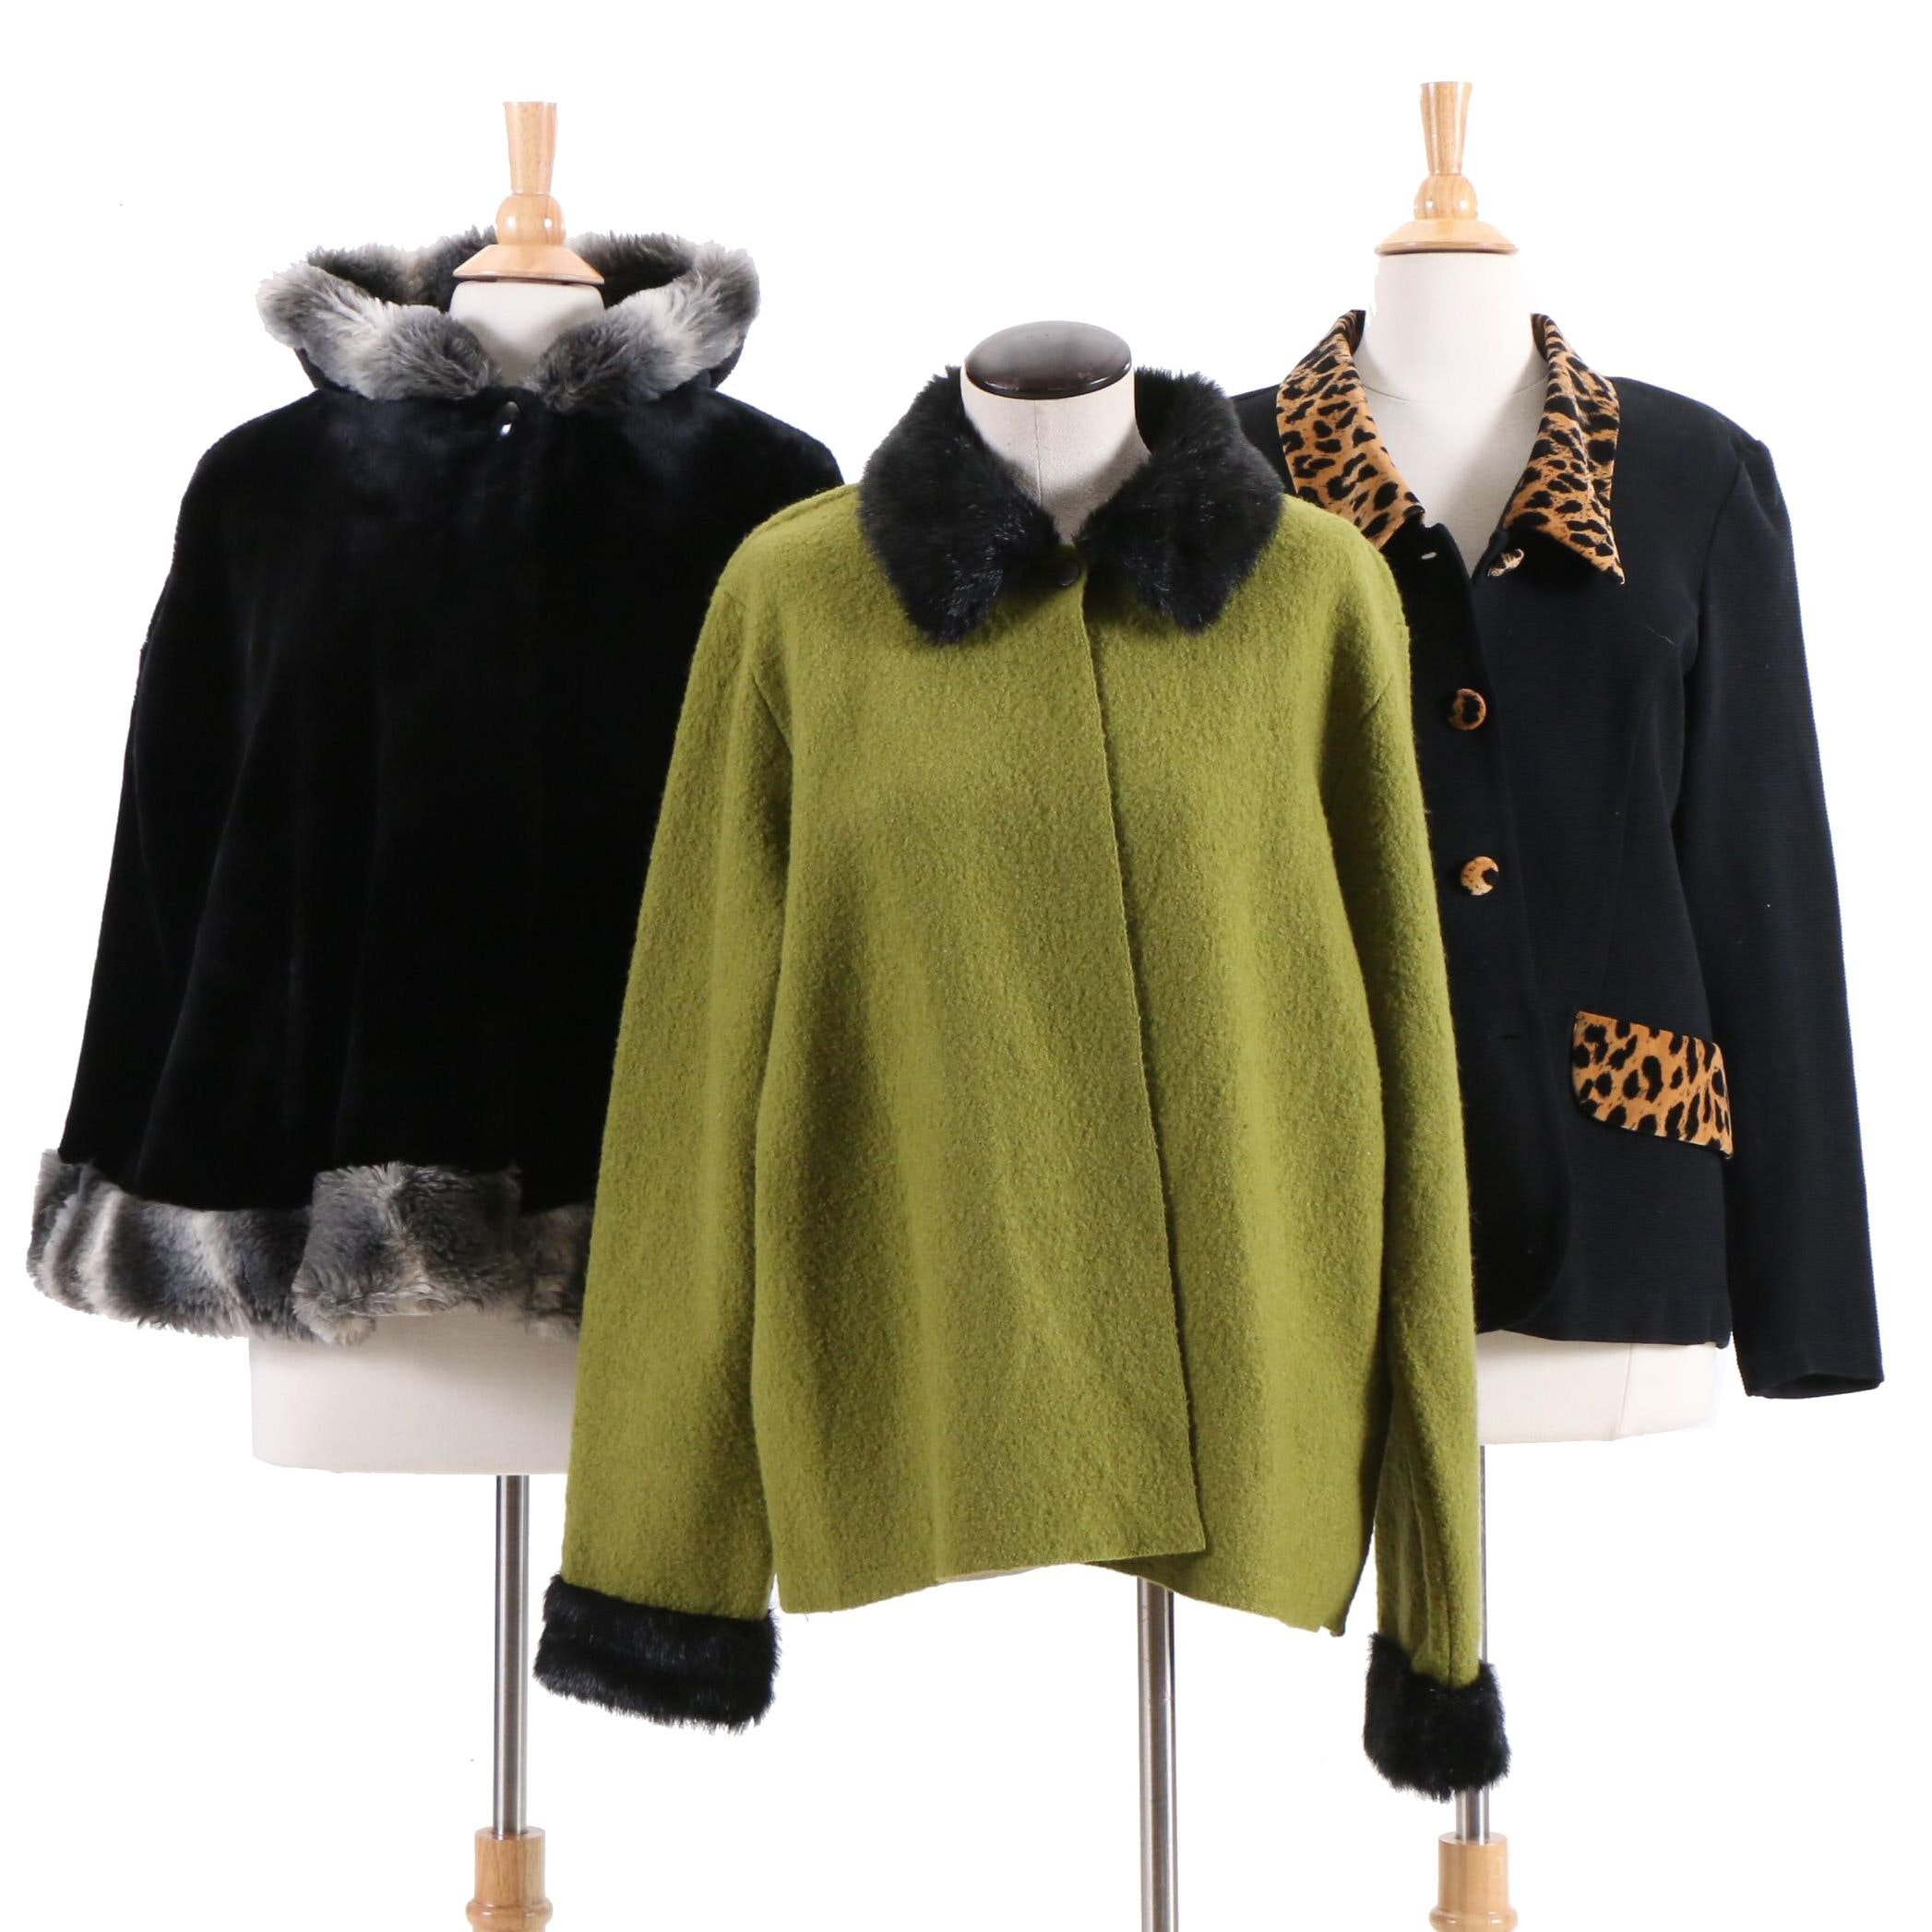 Carole Little Faux Fur Trimmed Jacket and Other Outerwear